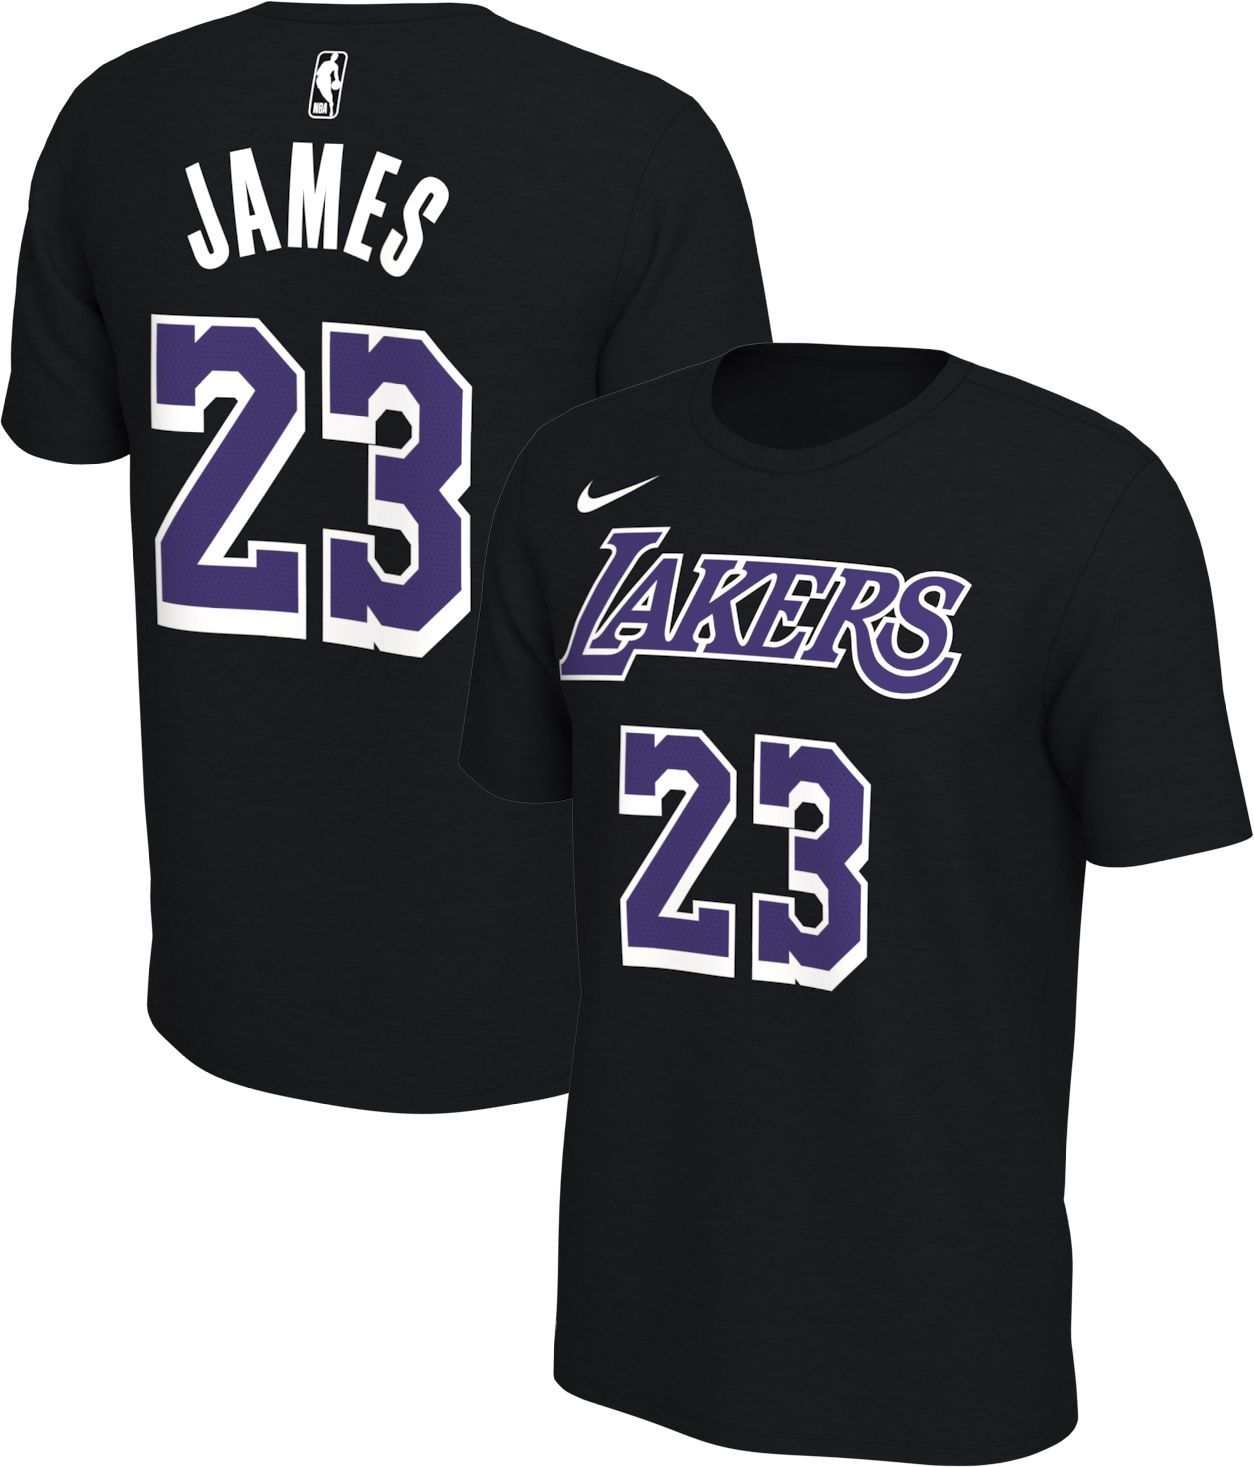 more photos 8ceb1 f7f93 Nike Men's Los Angeles Lakers LeBron James #23 Dri-FIT Black ...